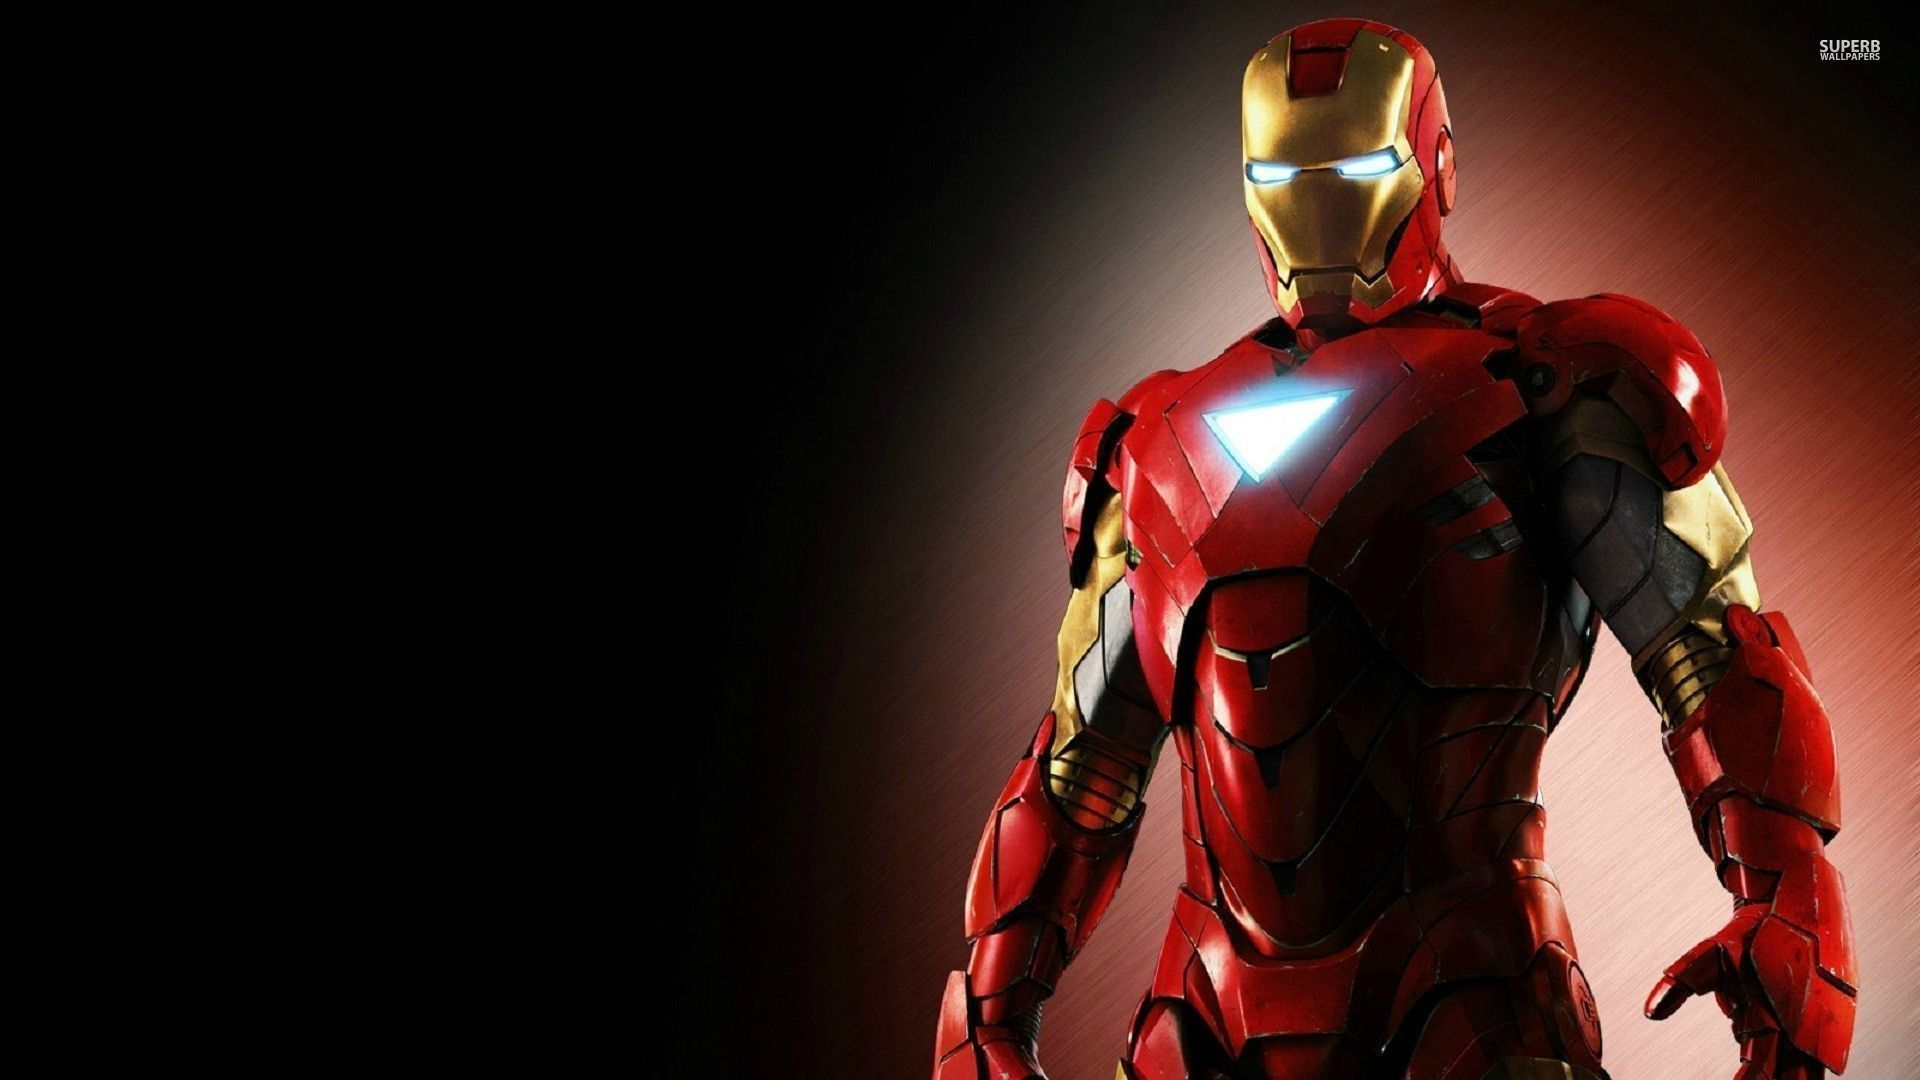 Iron Man Hd Free Wallpaper Download 1920x1200 Pics Wallpapers 36